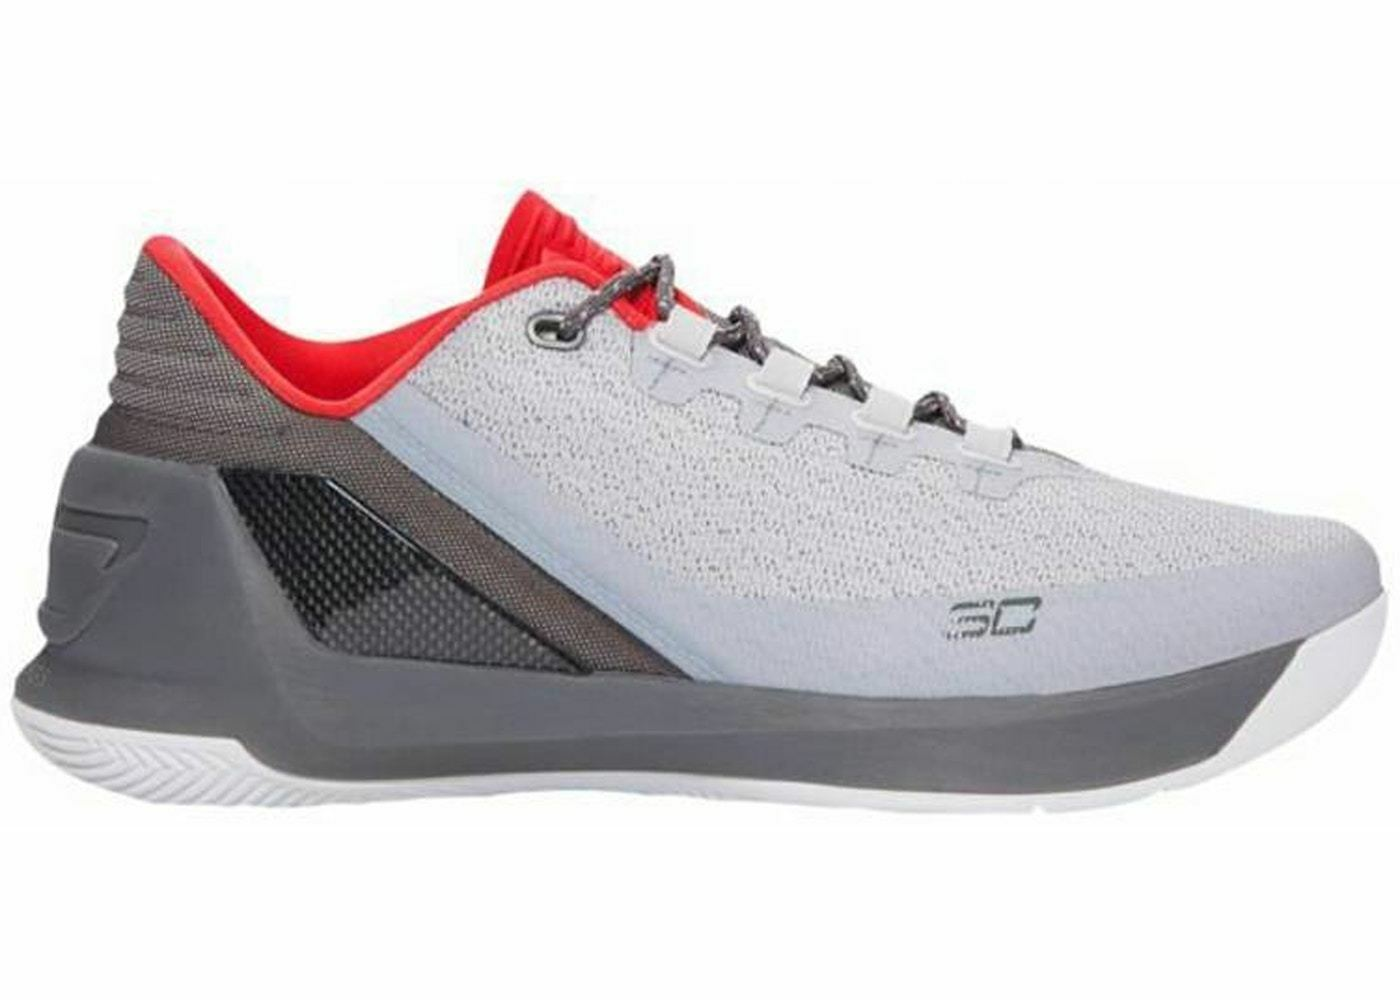 Under Armour Curry 3 Low